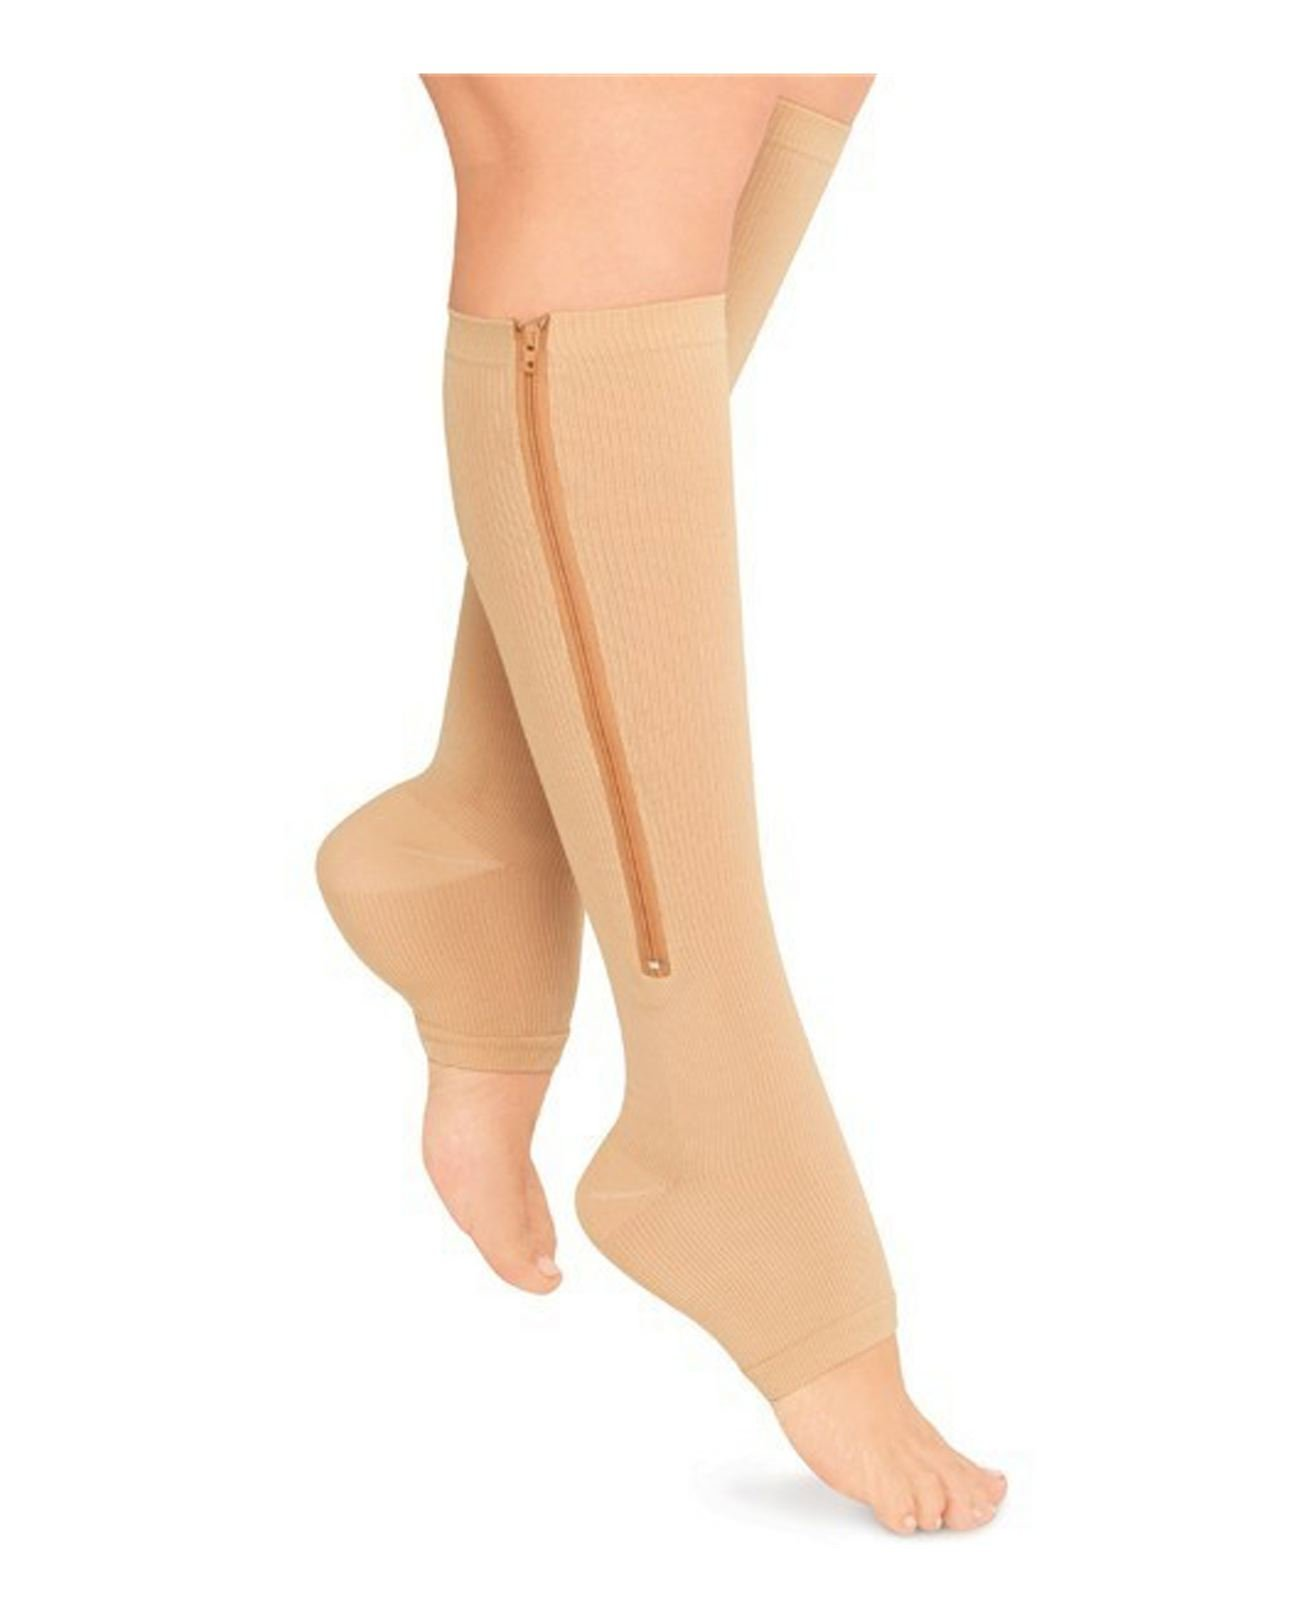 cae39ad2ac9 Get Quotations · Starmace Open Toe Zipper Compression Grade Leg Circulation  Reduce Fatigue Swelling Medical Recovery Support Stockings Socks